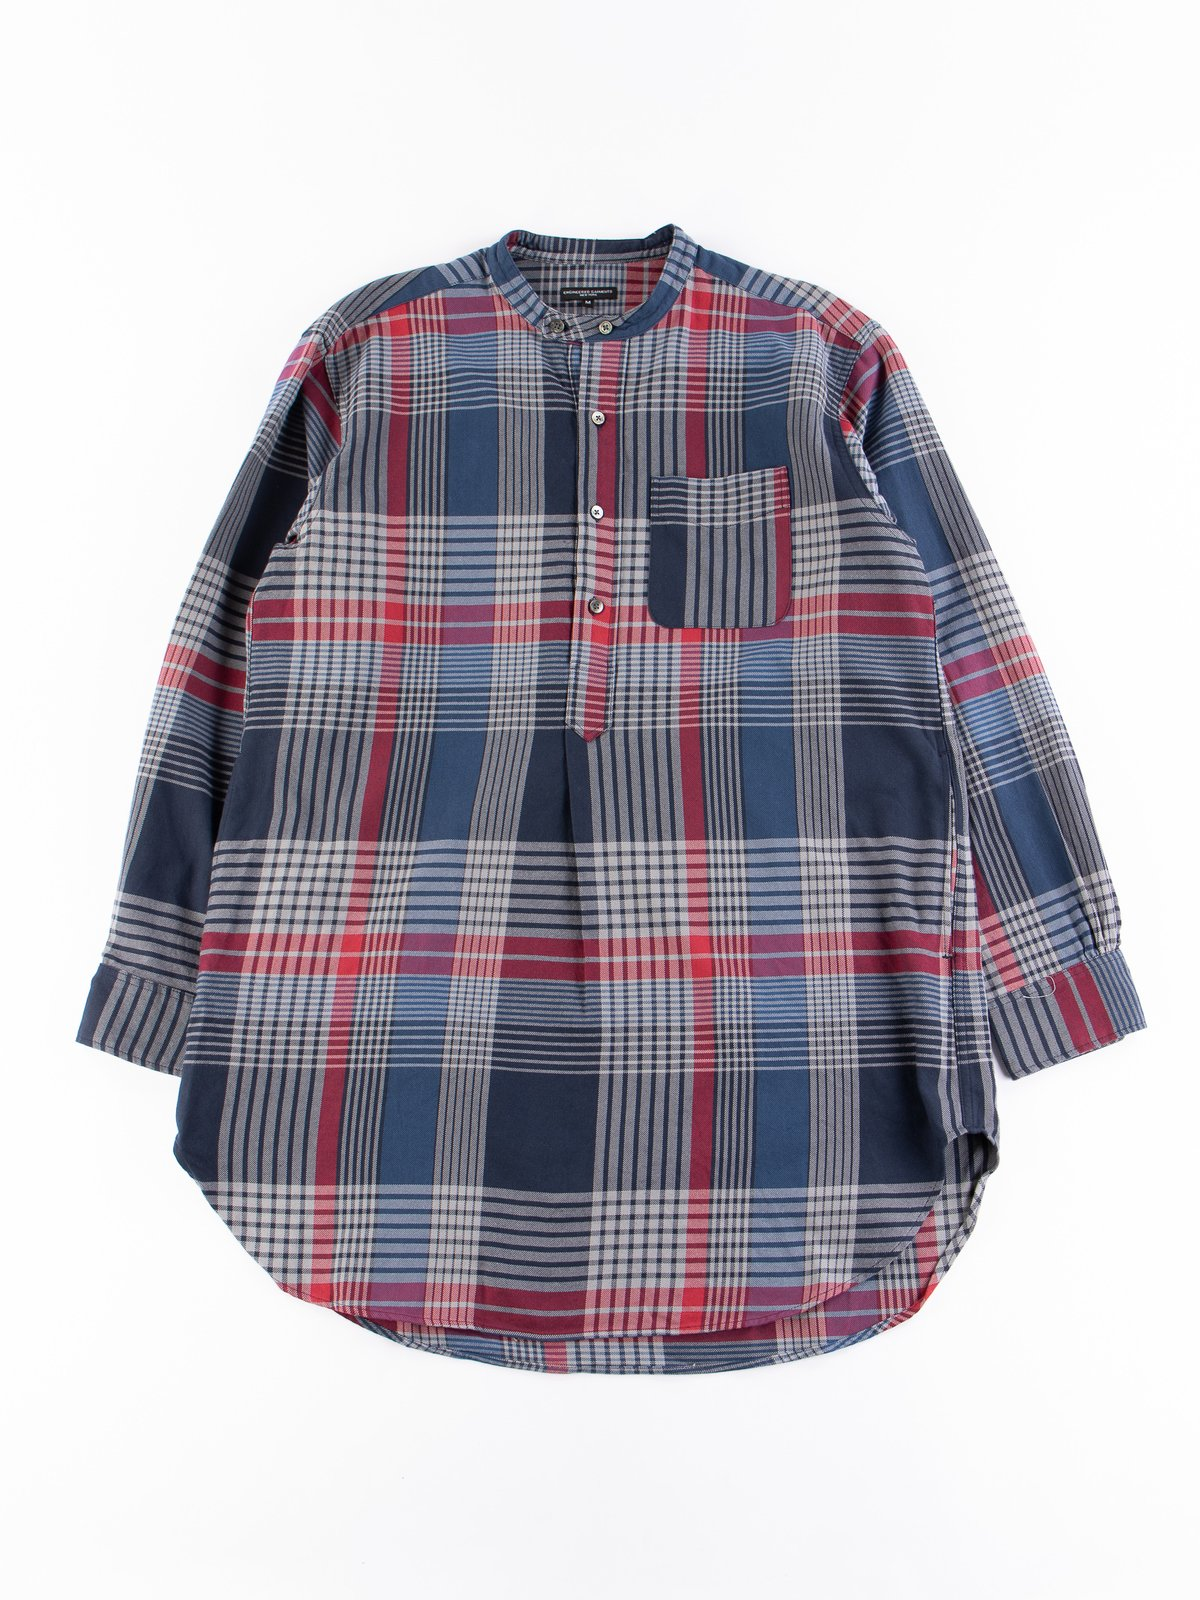 Navy/Grey/Red Cotton Twill Plaid Banded Collar Shirt - Image 1